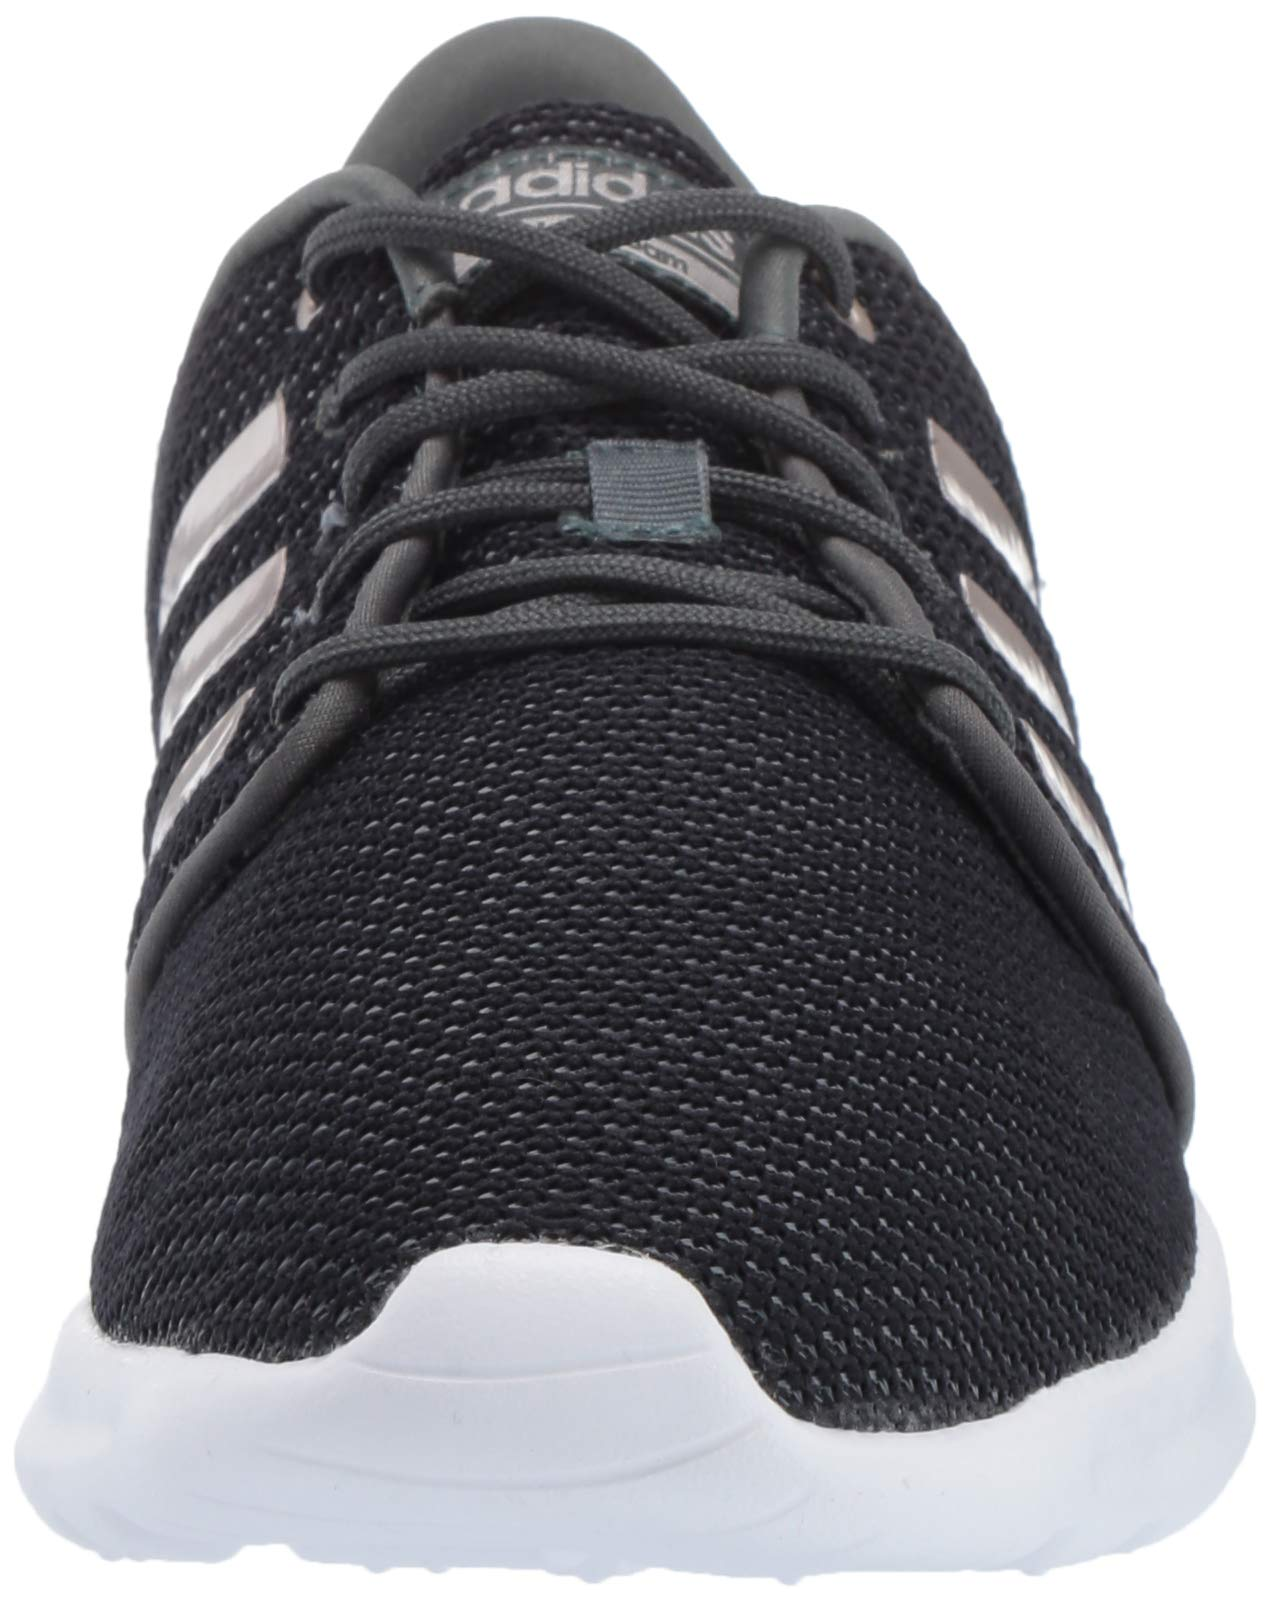 adidas Women's Cloudfoam QT Racer, Legend Ivy/Platino Metallic/Black 5 M US by adidas (Image #4)